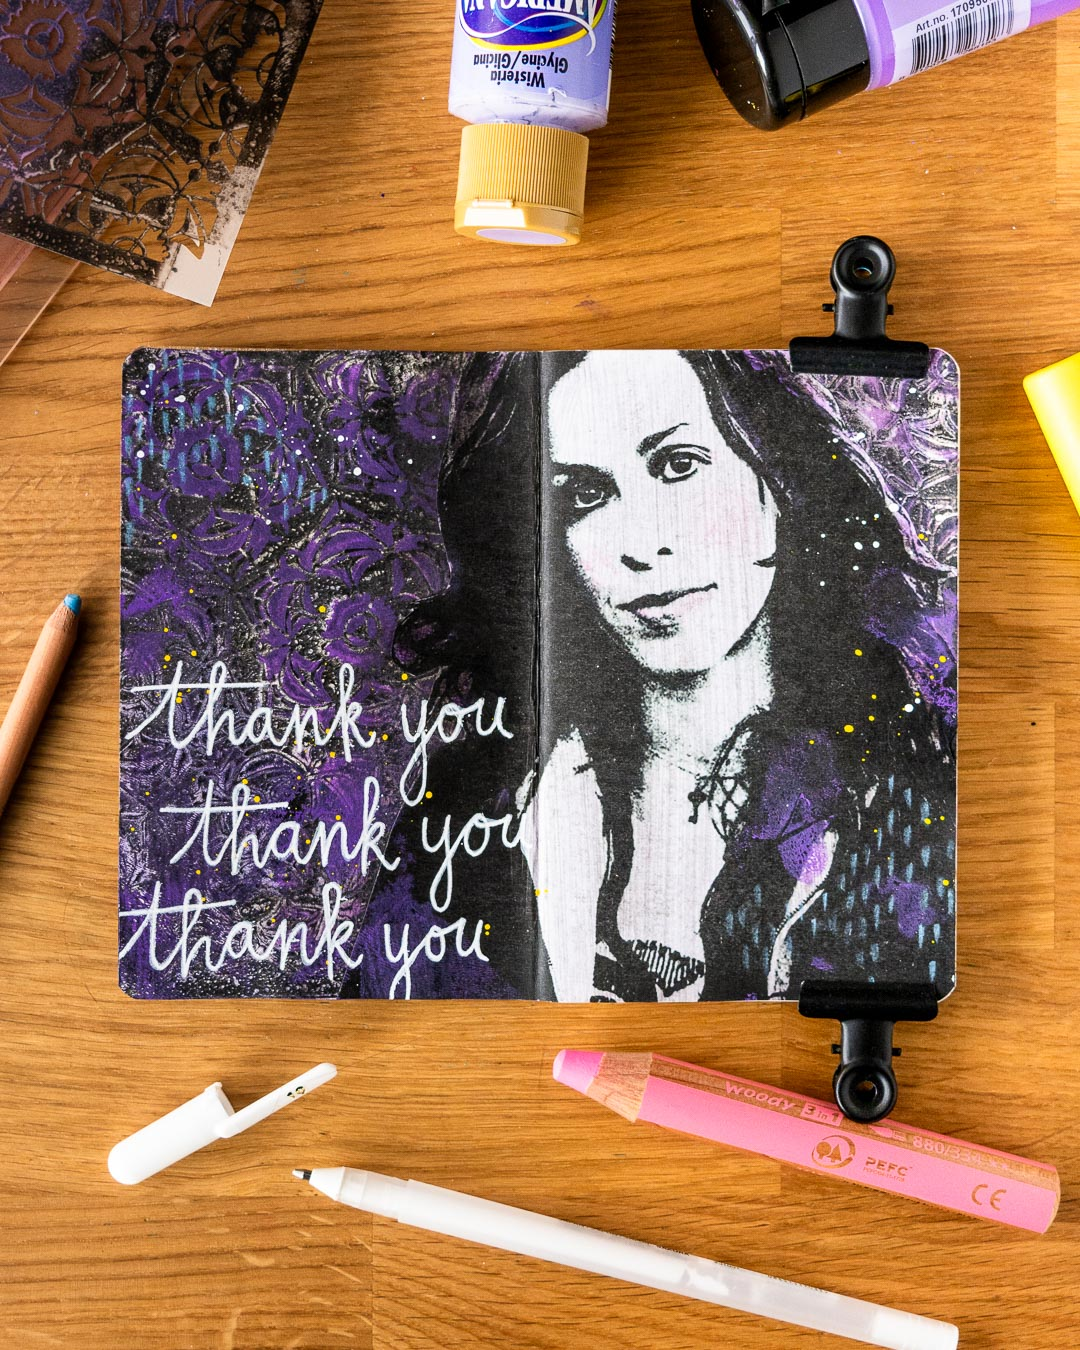 Marsha Valk | The Stencilfied Journal 2019 - Prompt 6 Thank You